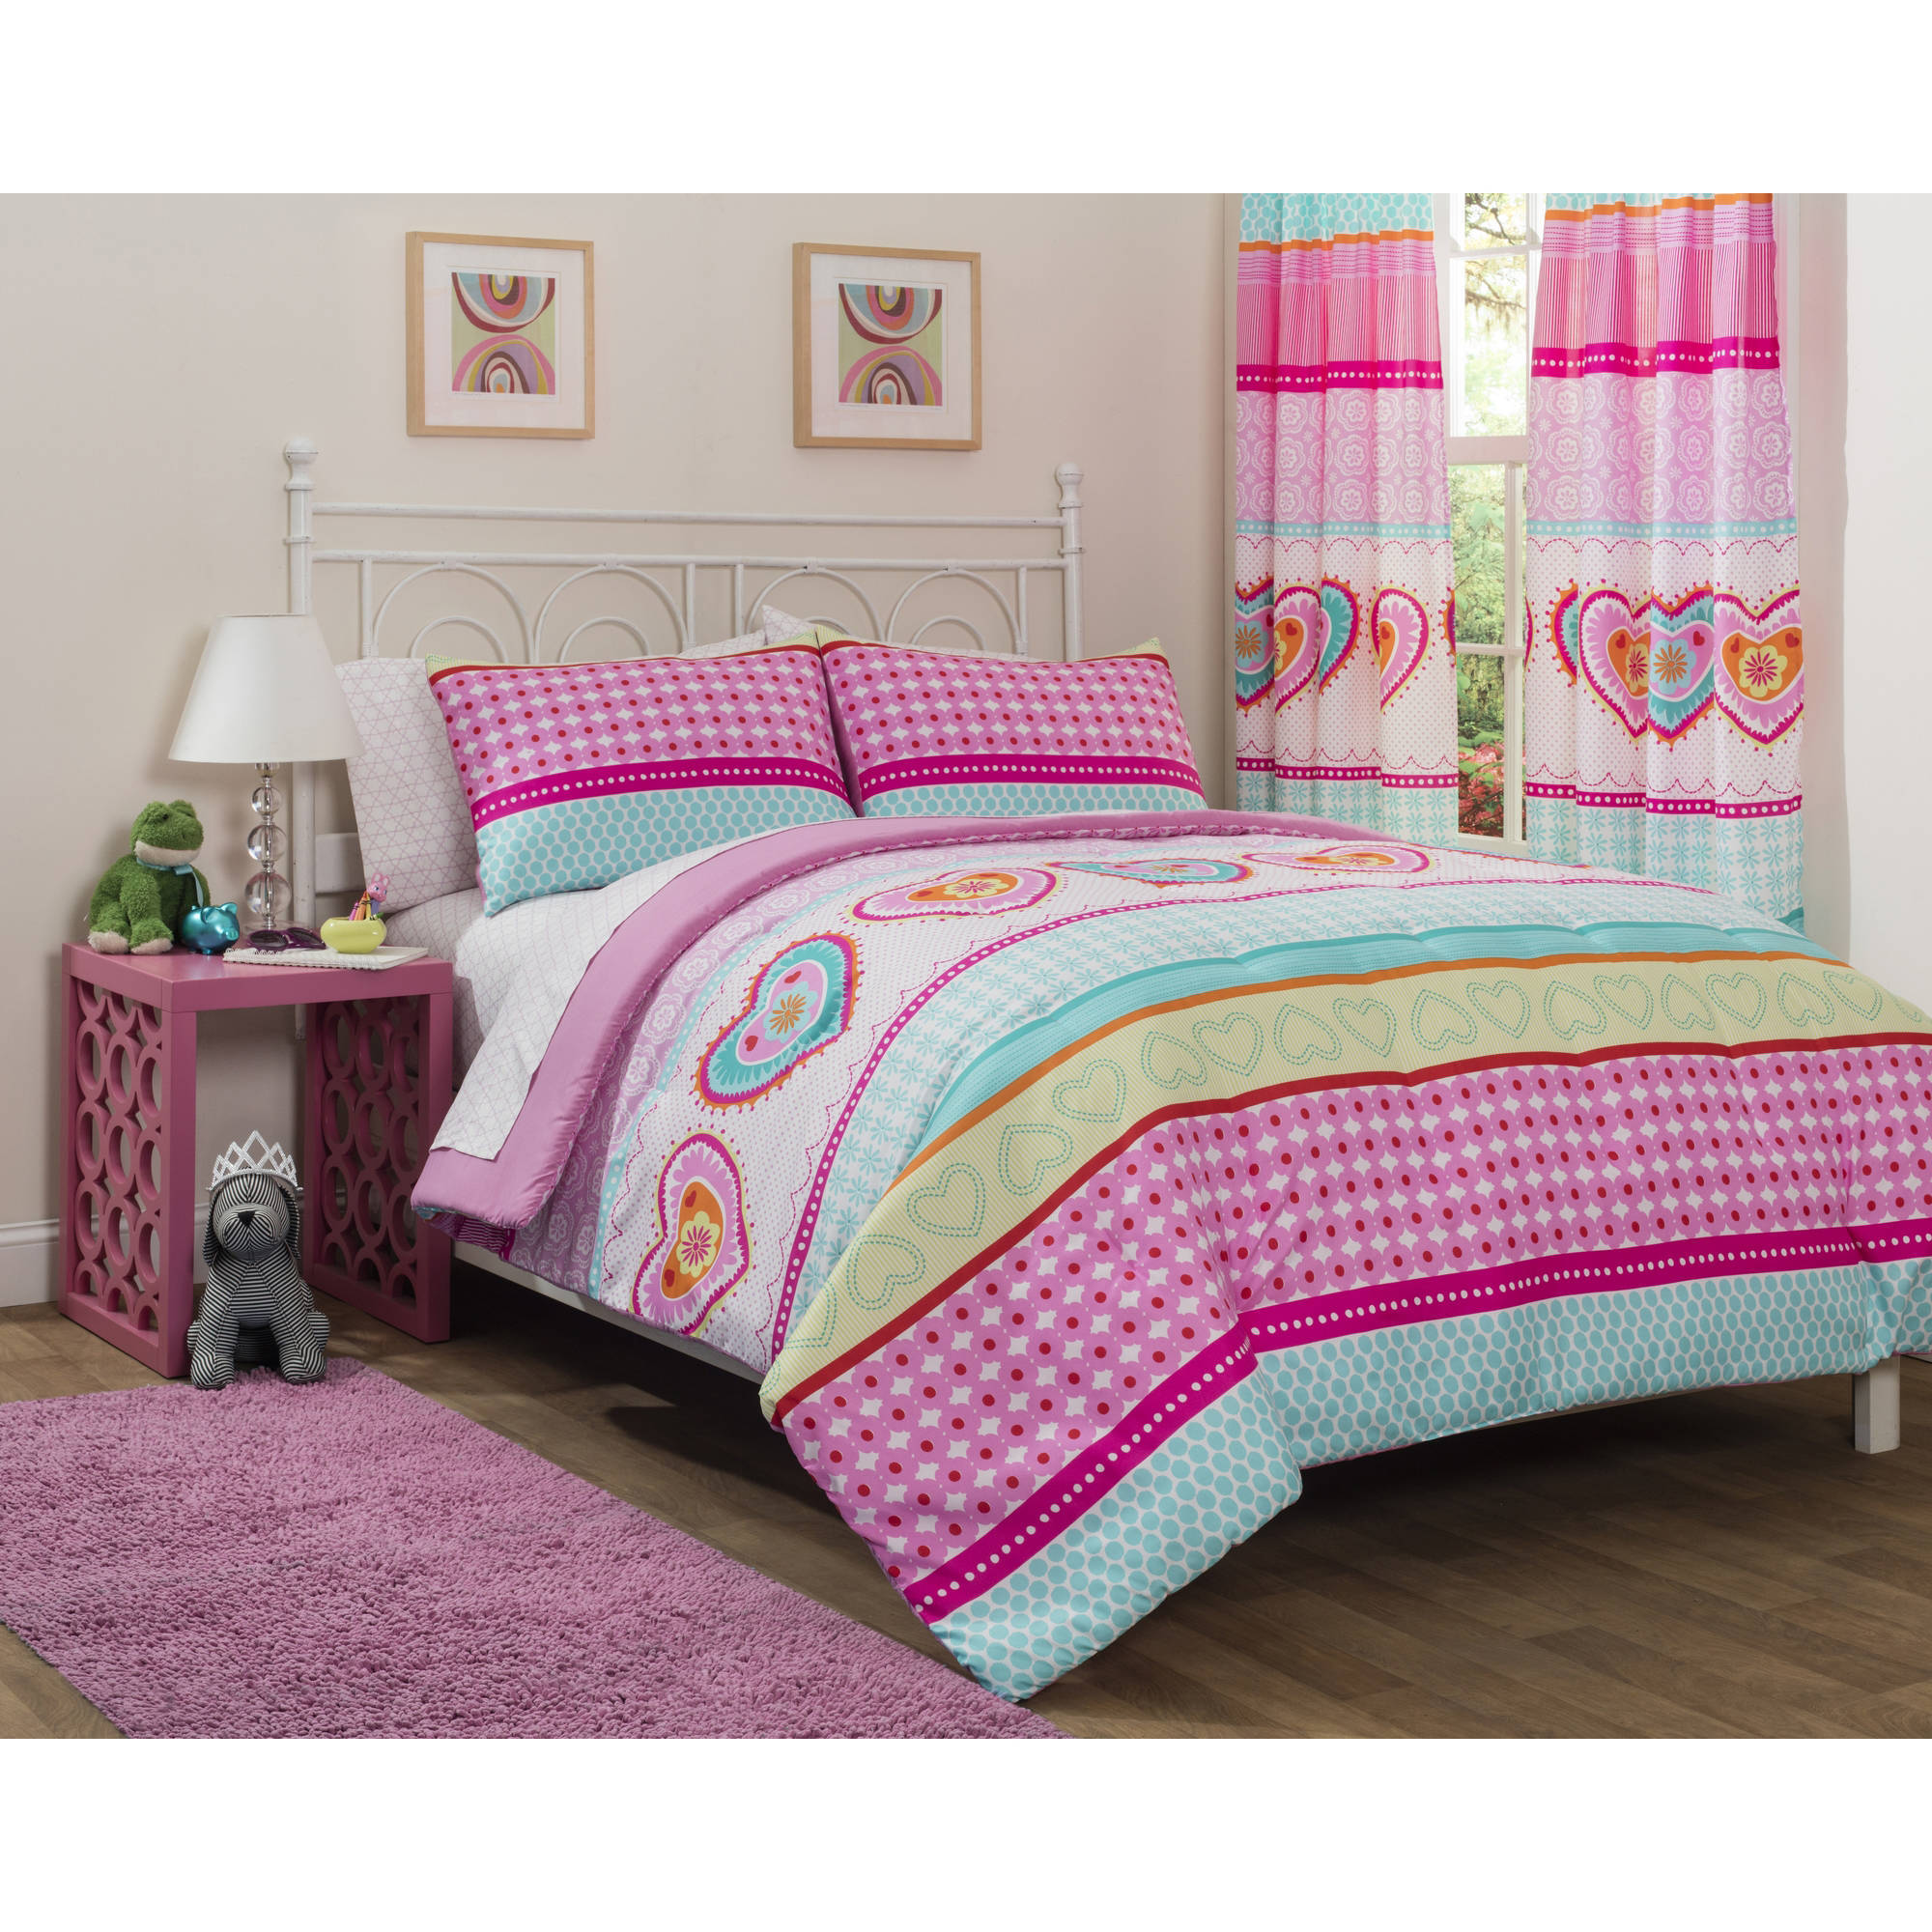 Mainstays Kids Hearts and Stripes Patchwork Bed-in-a-Bag Bedding Set by Idea Nuova